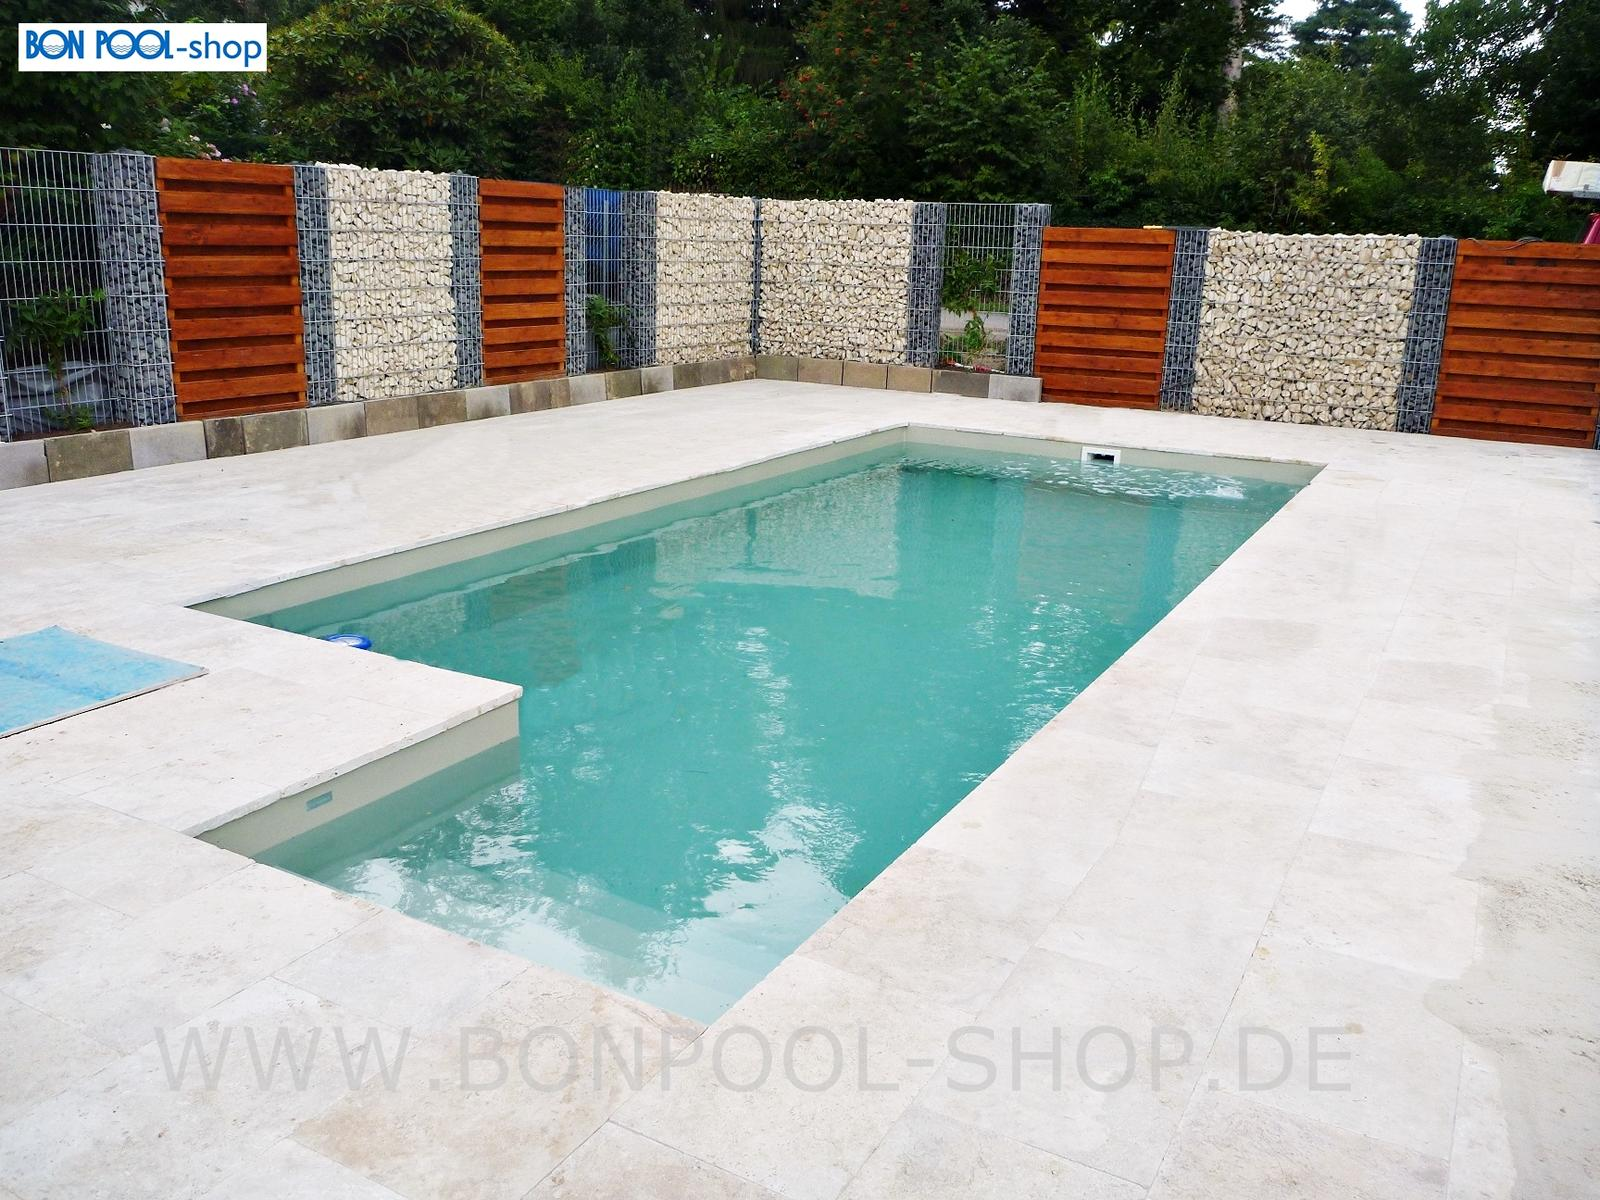 bon pool infinity pool set sand 600x330cm tiefe 150 bon pool schwimmbadbau sauna ir. Black Bedroom Furniture Sets. Home Design Ideas